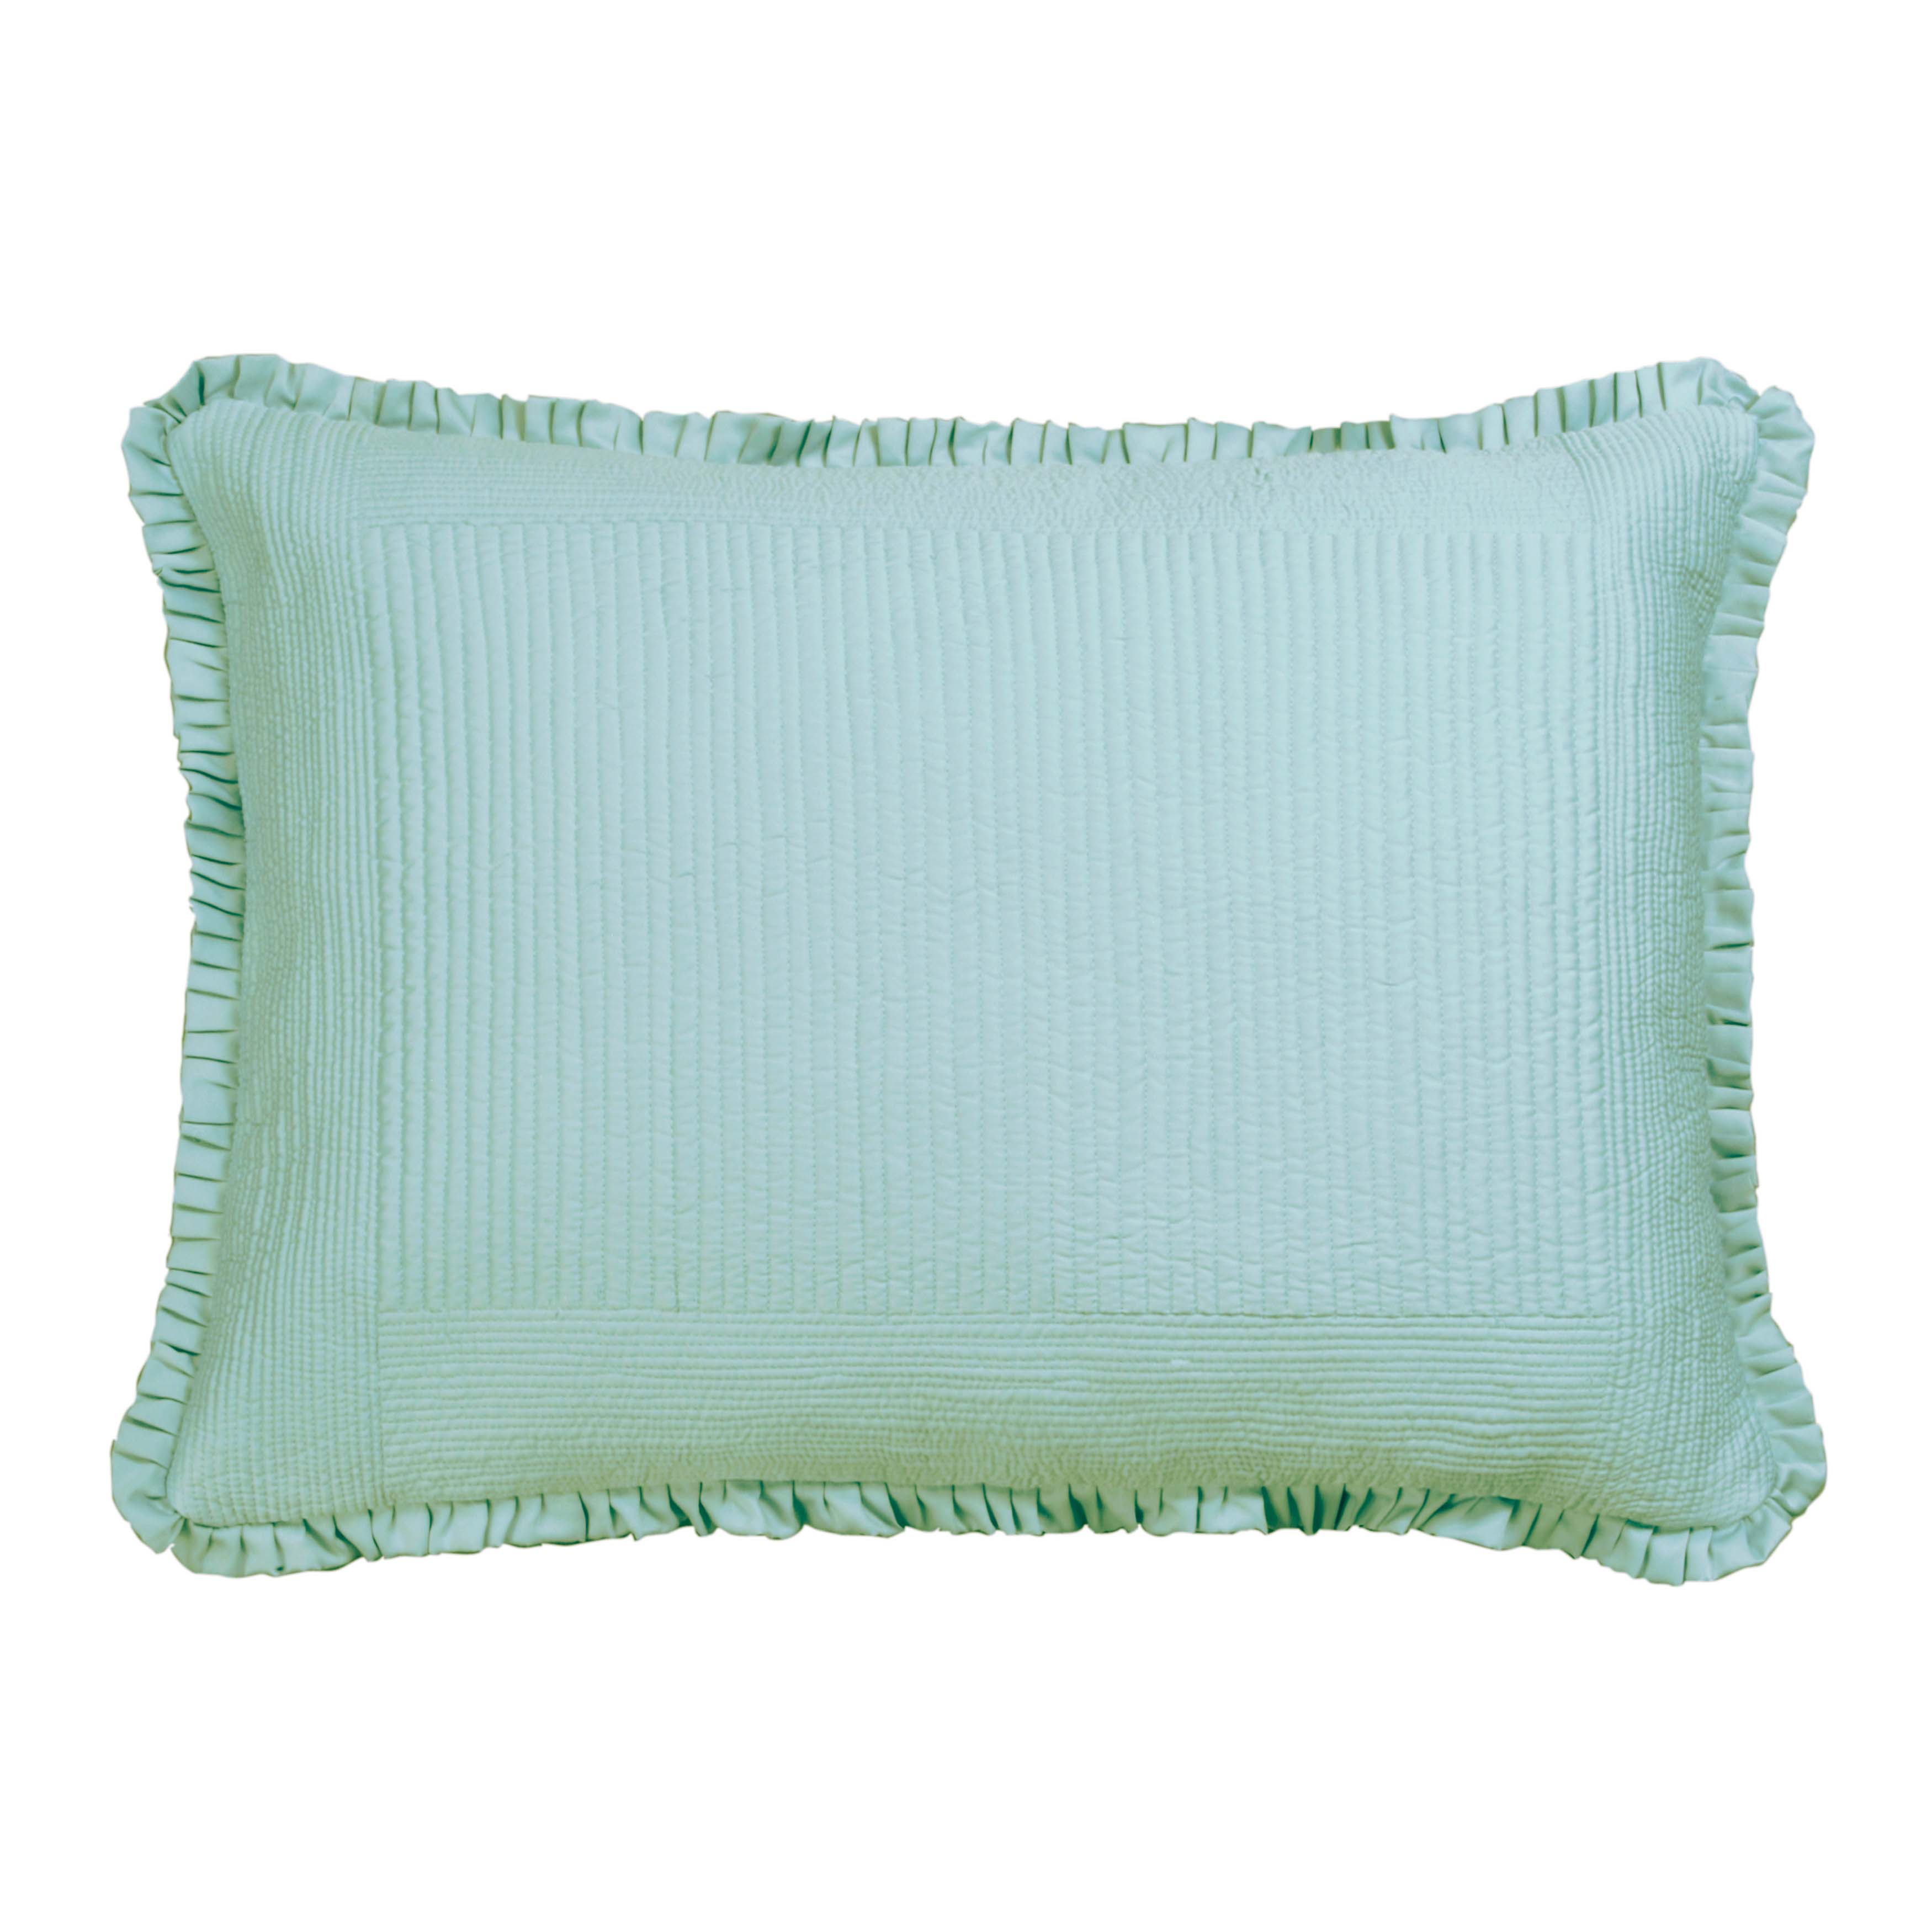 Battersea Sea Foam S&S Quilted Pillow Throw Pillows By Lili Alessandra